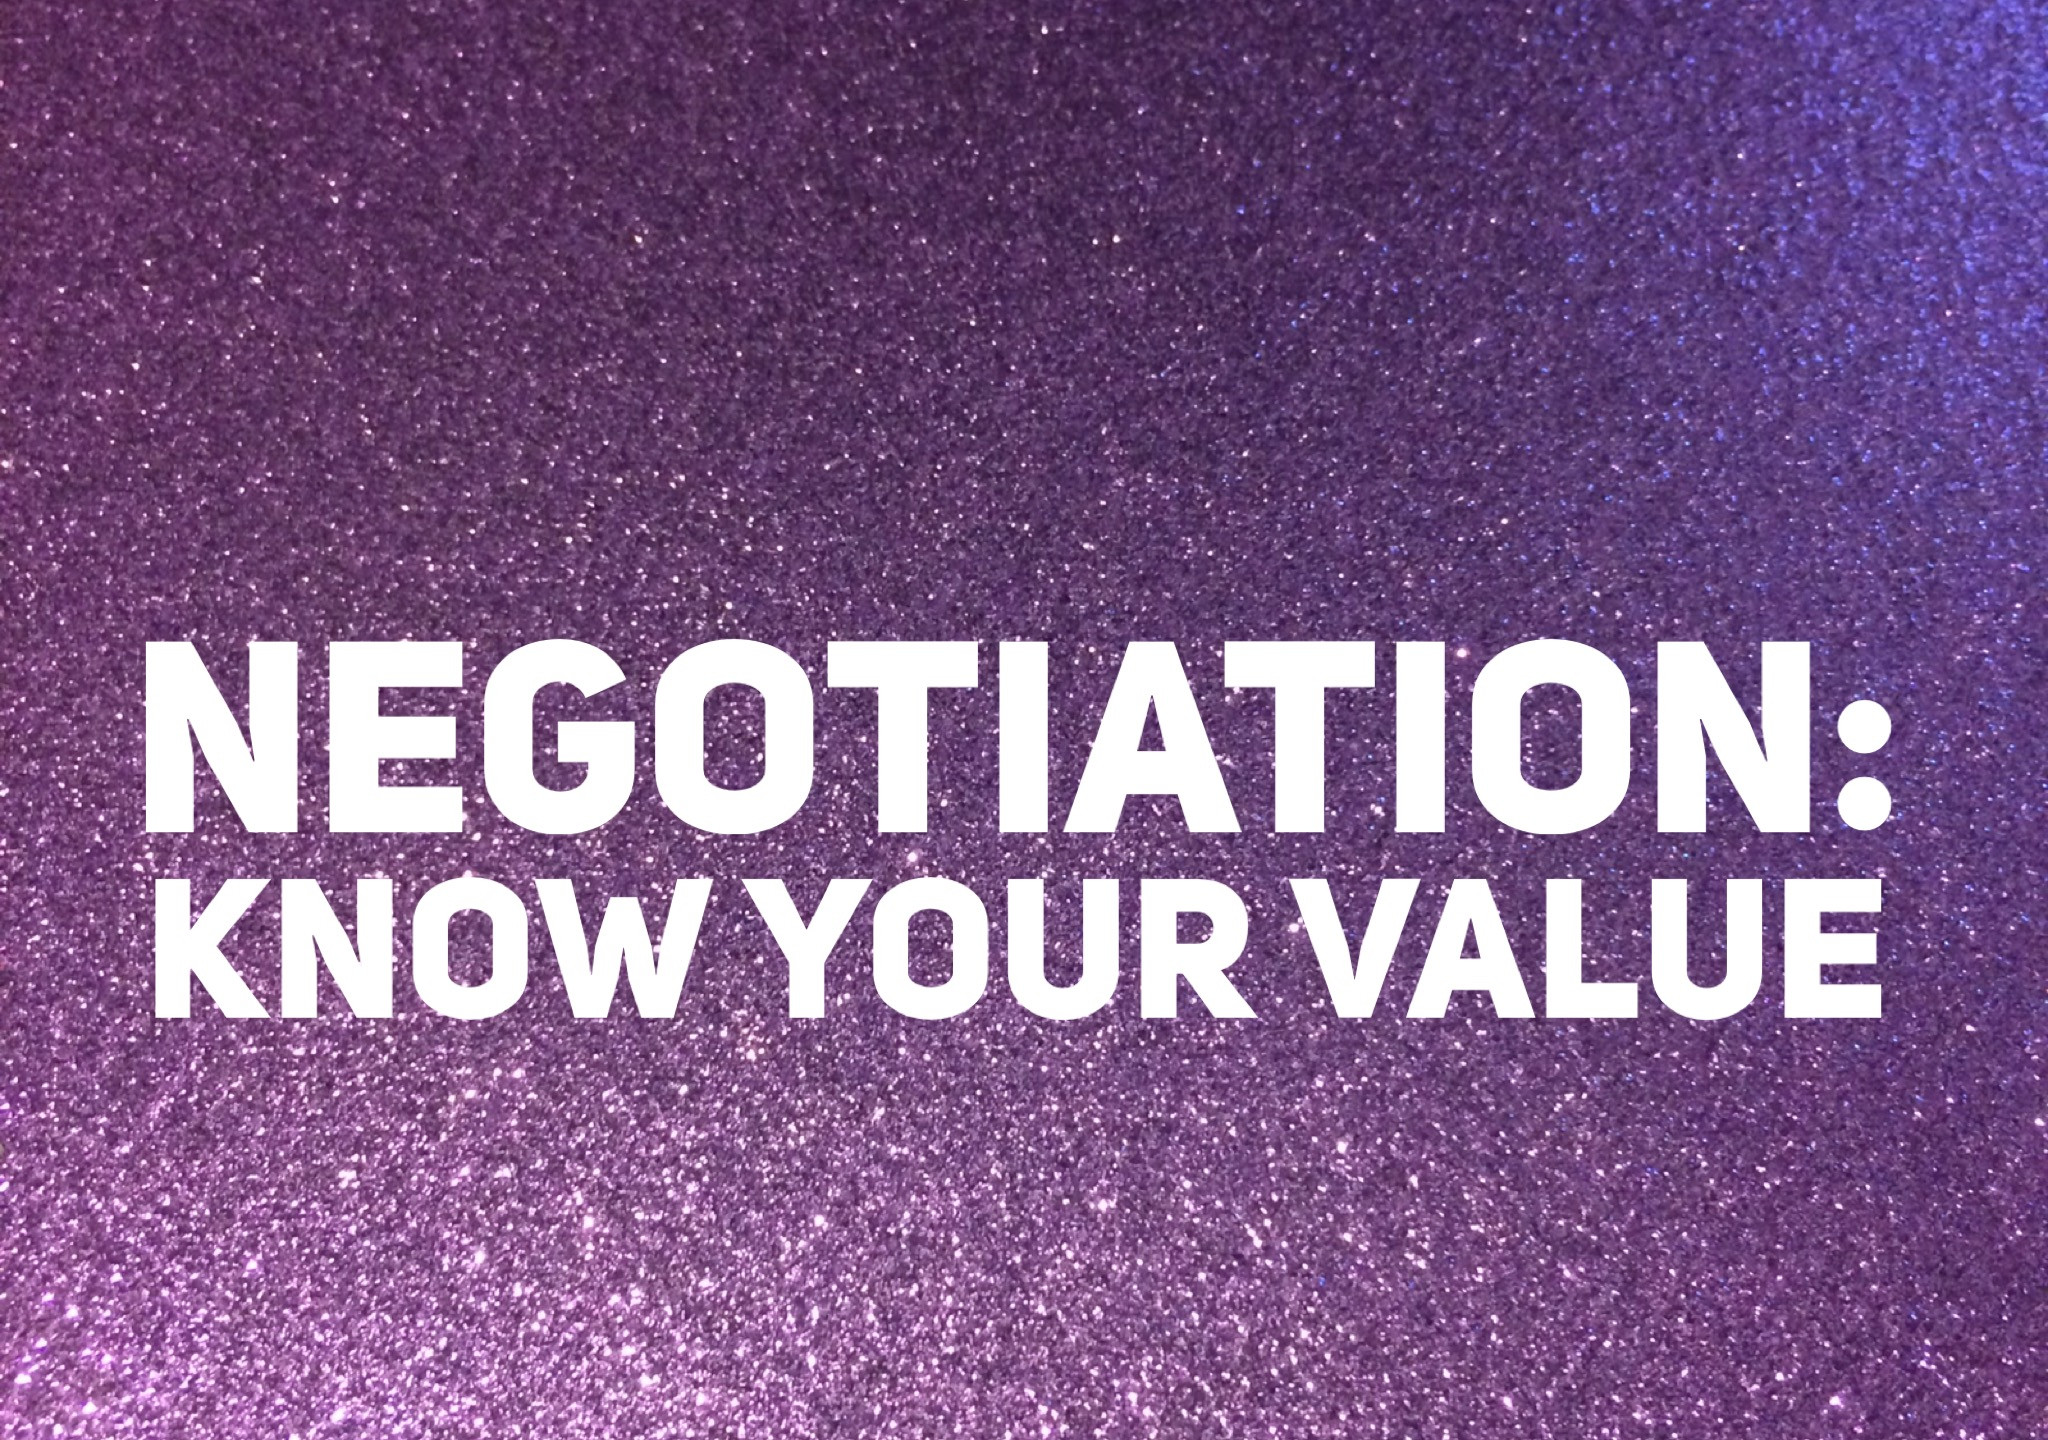 Career Negotiation Know Your Value That Purple Book